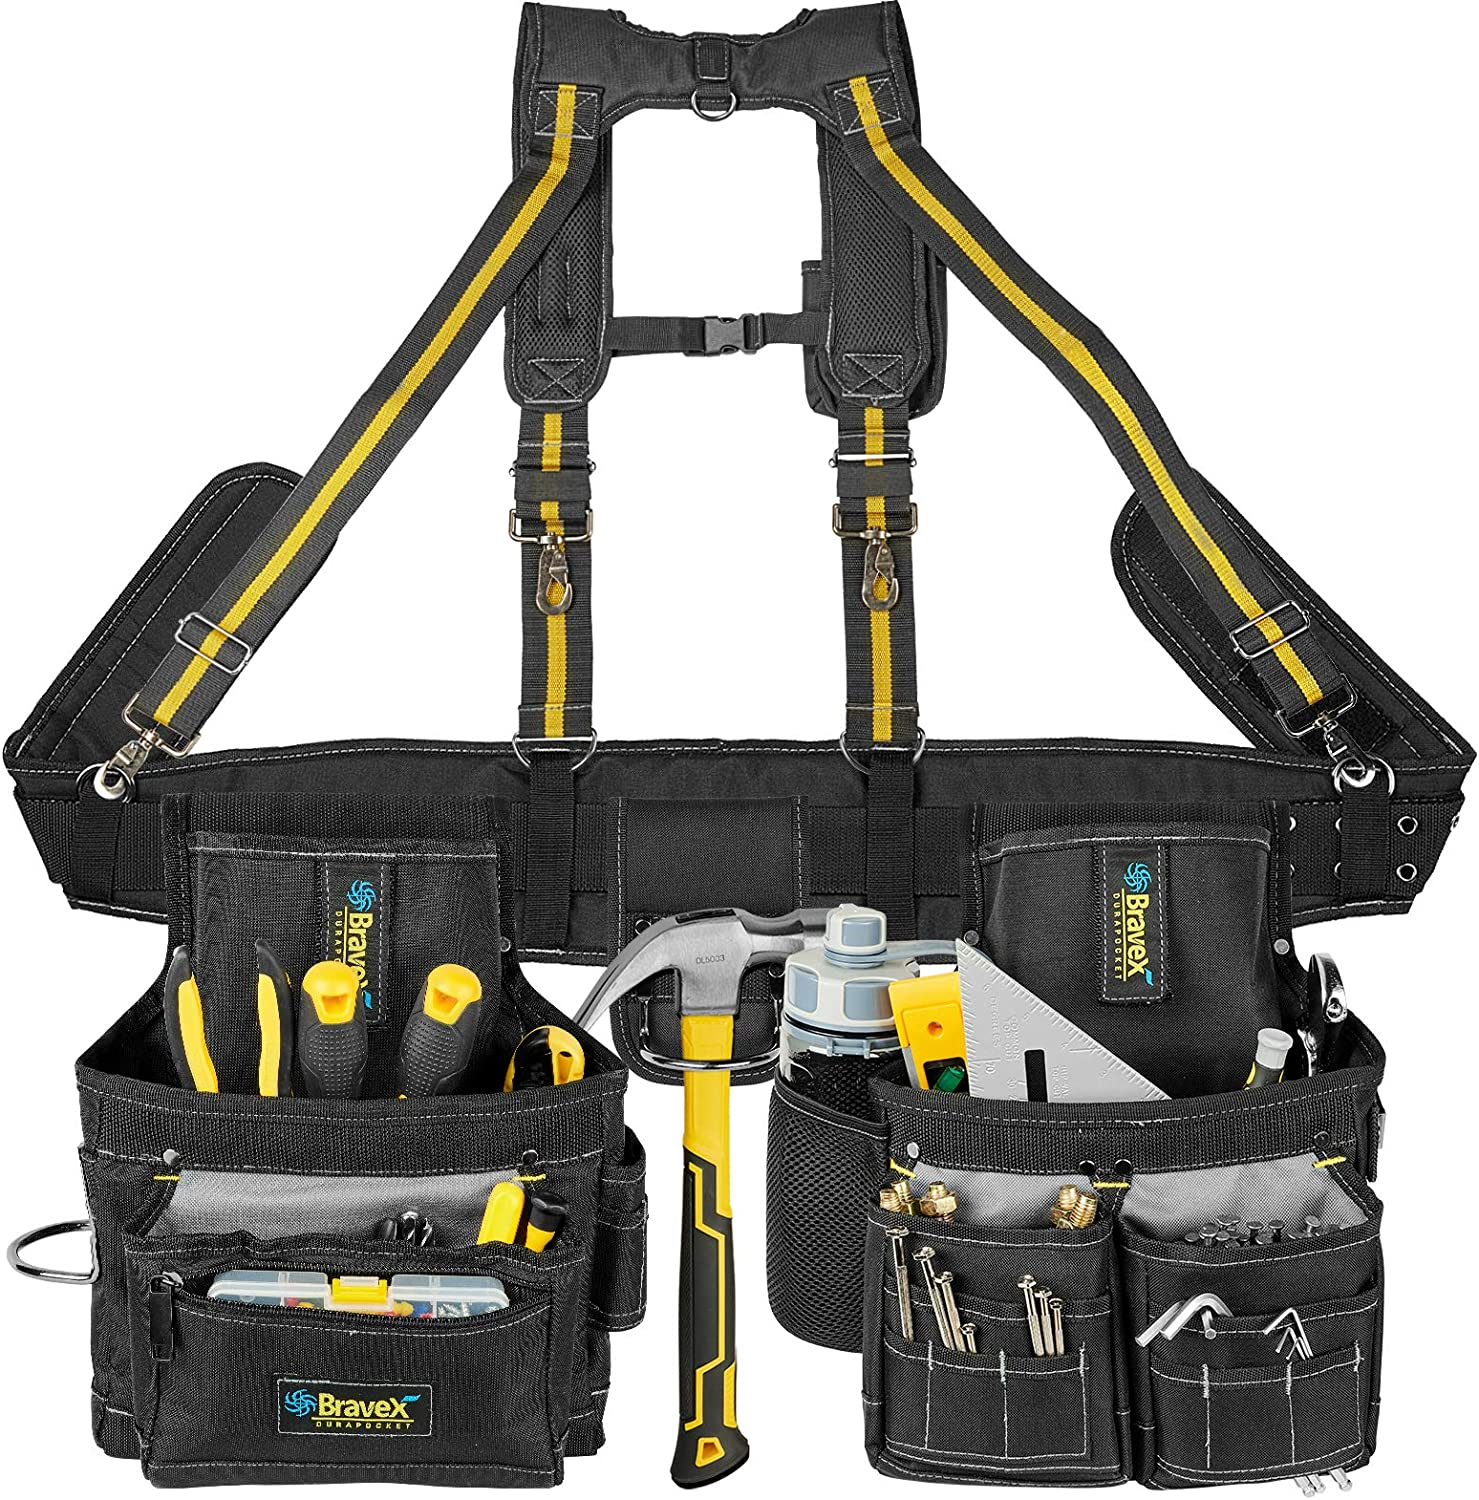 Bravex Tool Belt Suspenders Beauty products - Ultra Bags Anti-wear excellence 20 Vest